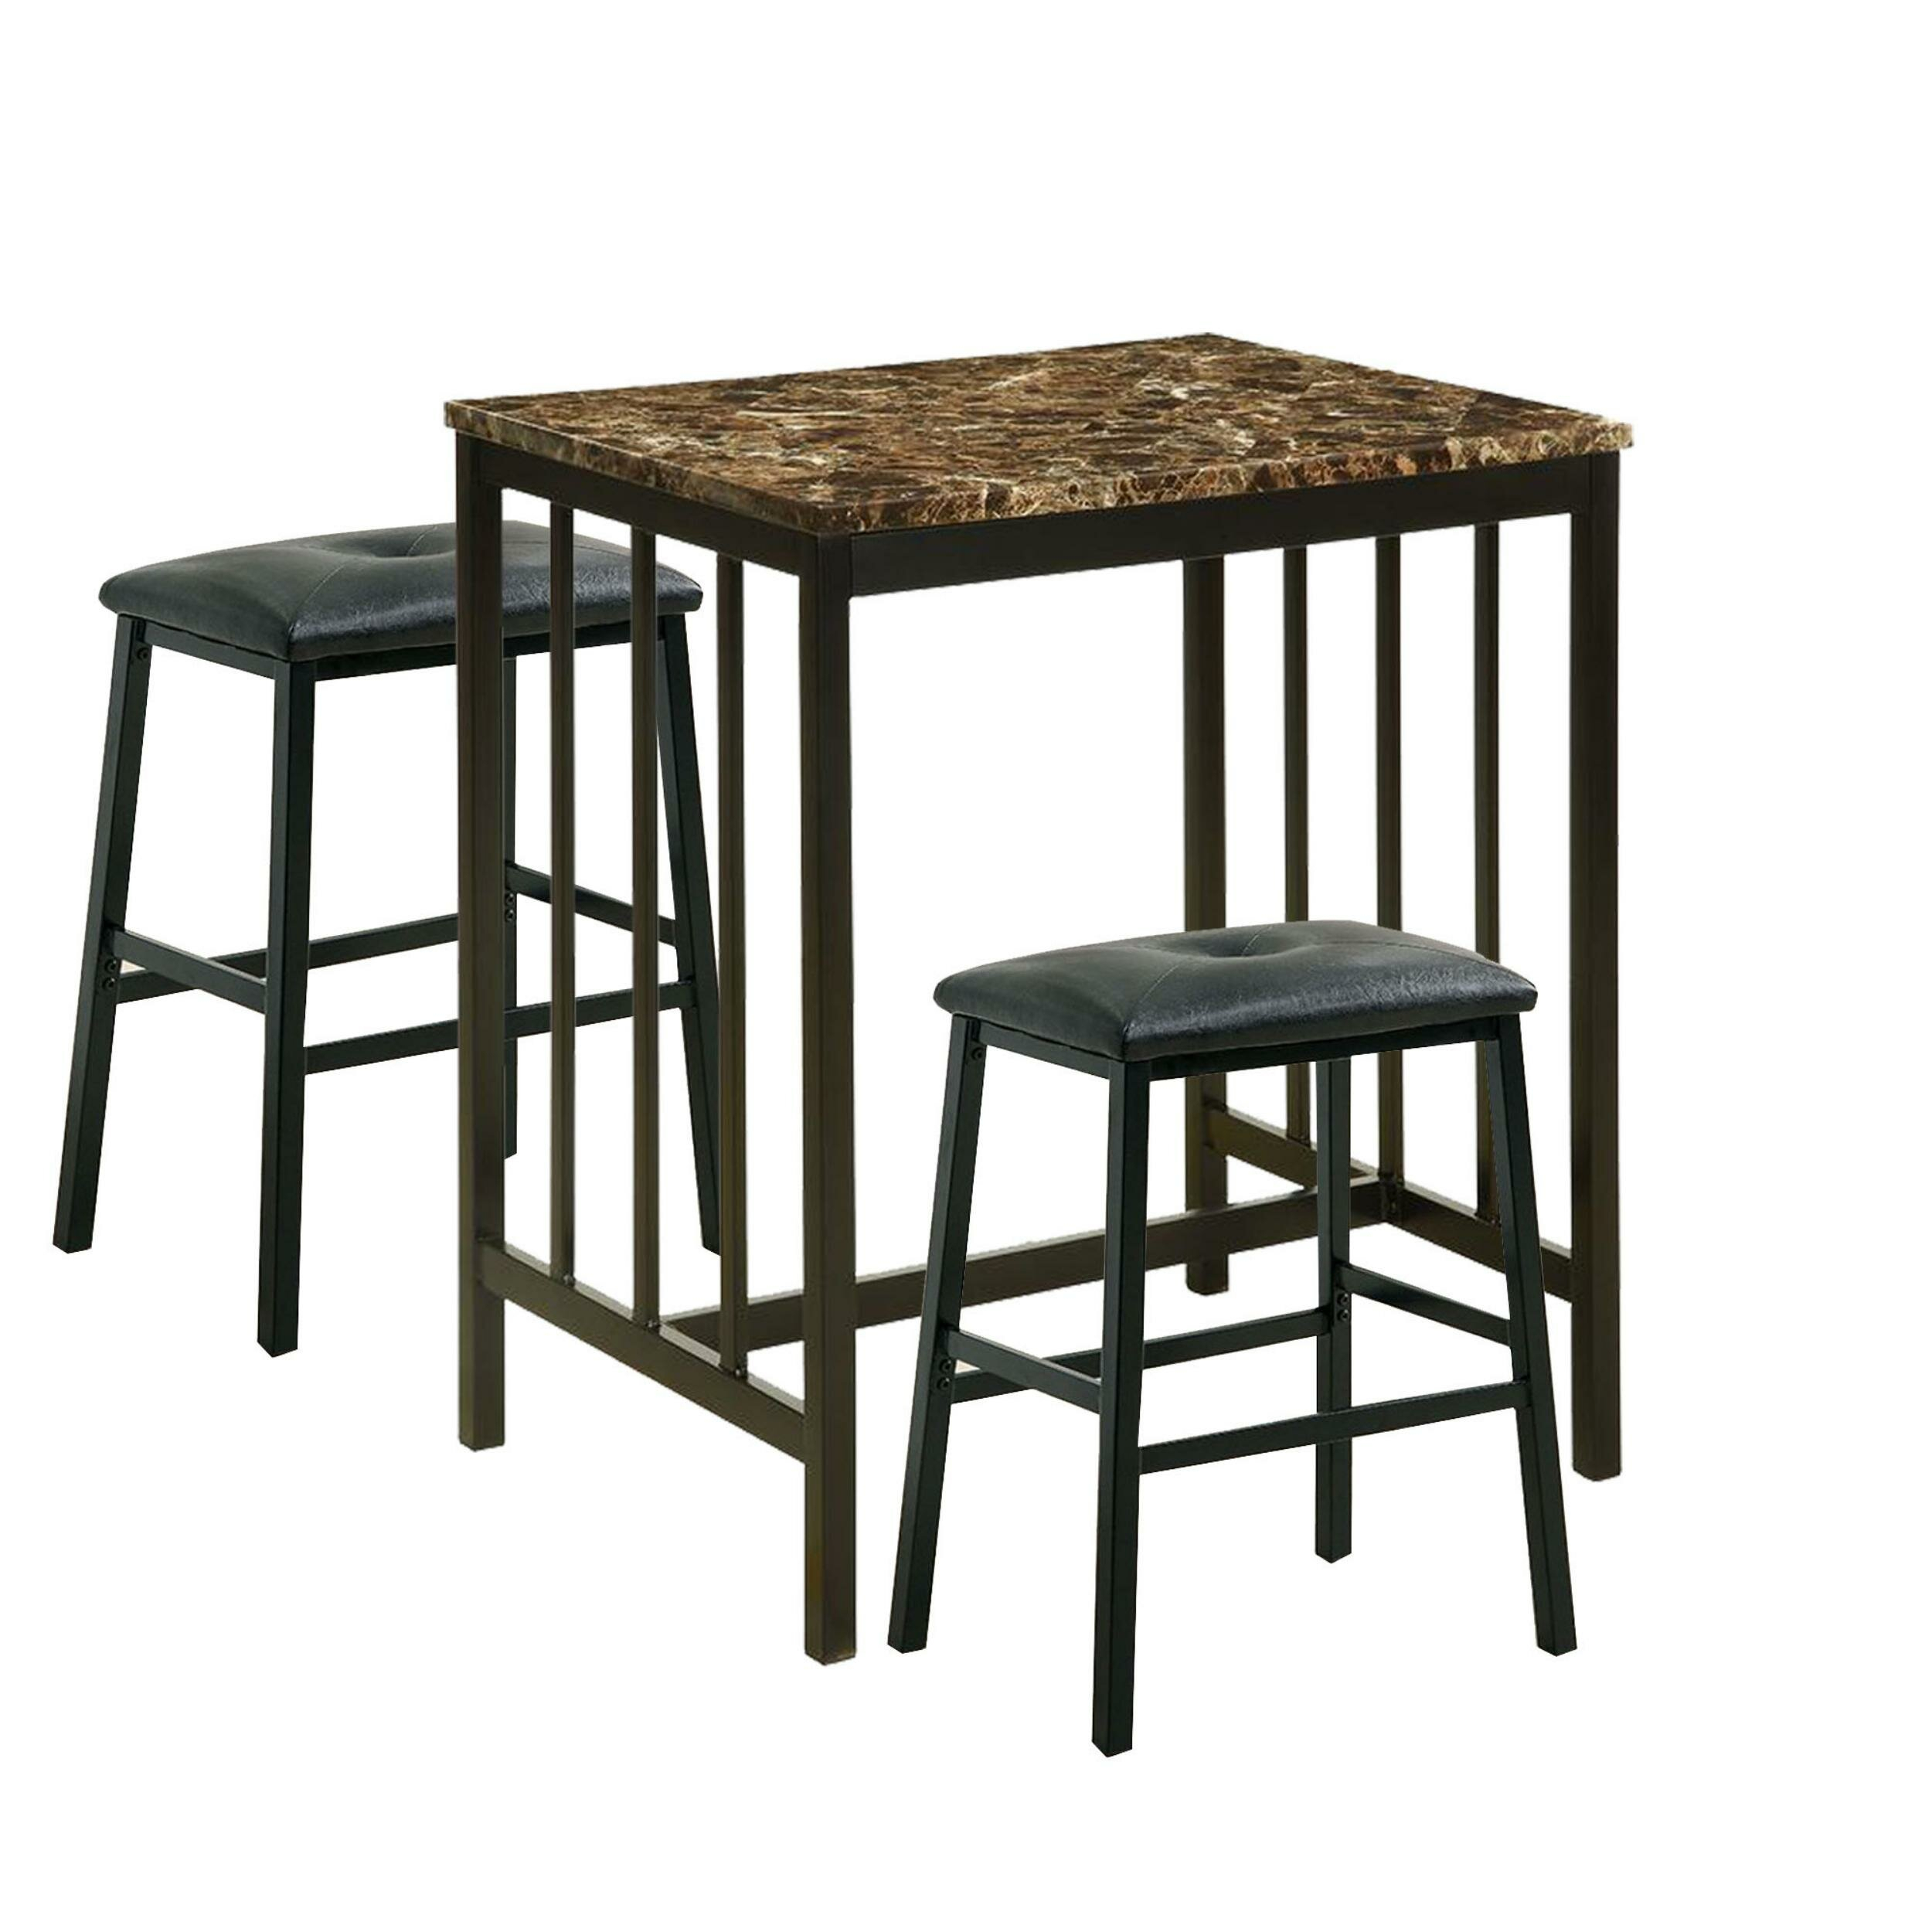 Parton 3 Piece Pub Table Set With Regard To 2017 Kernville 3 Piece Counter Height Dining Sets (Image 13 of 20)